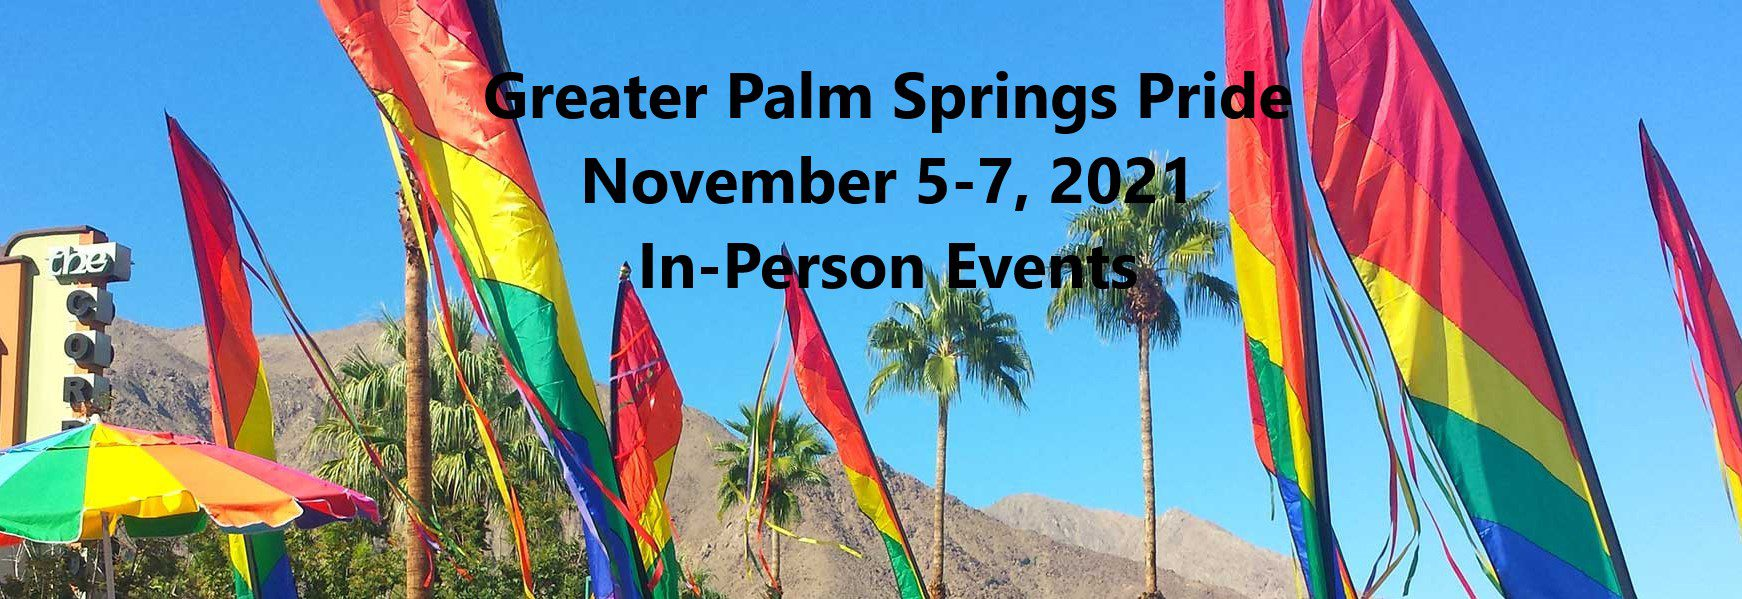 Greater Palm Springs Pride Flyer